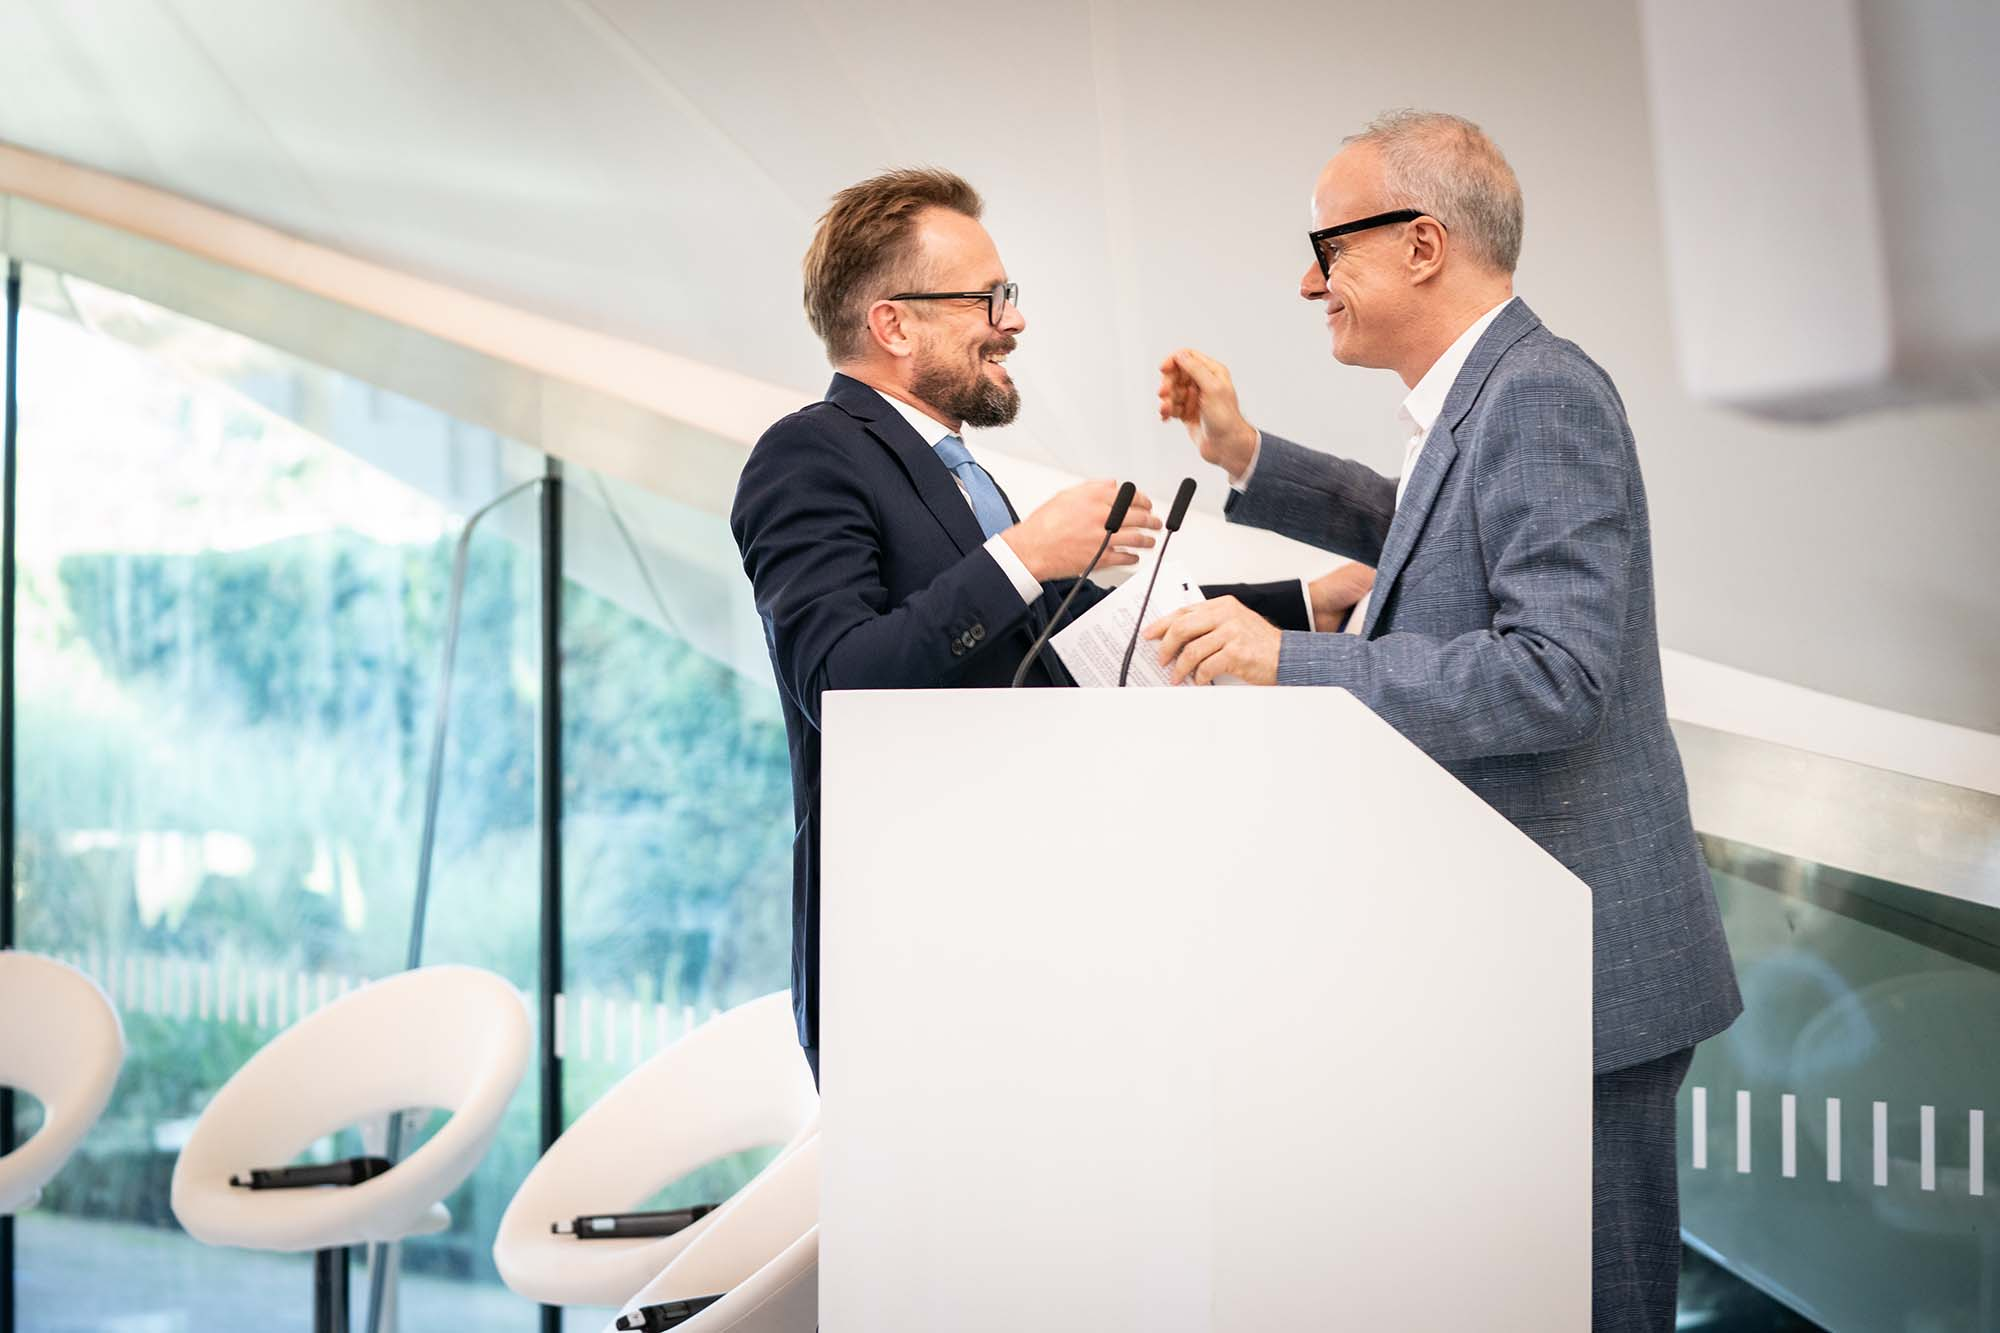 Mikolaj Sekutowicz, Curator of Therme Art and Hans Ulrich Obrist, Artistic Director of Serpentine Galleries